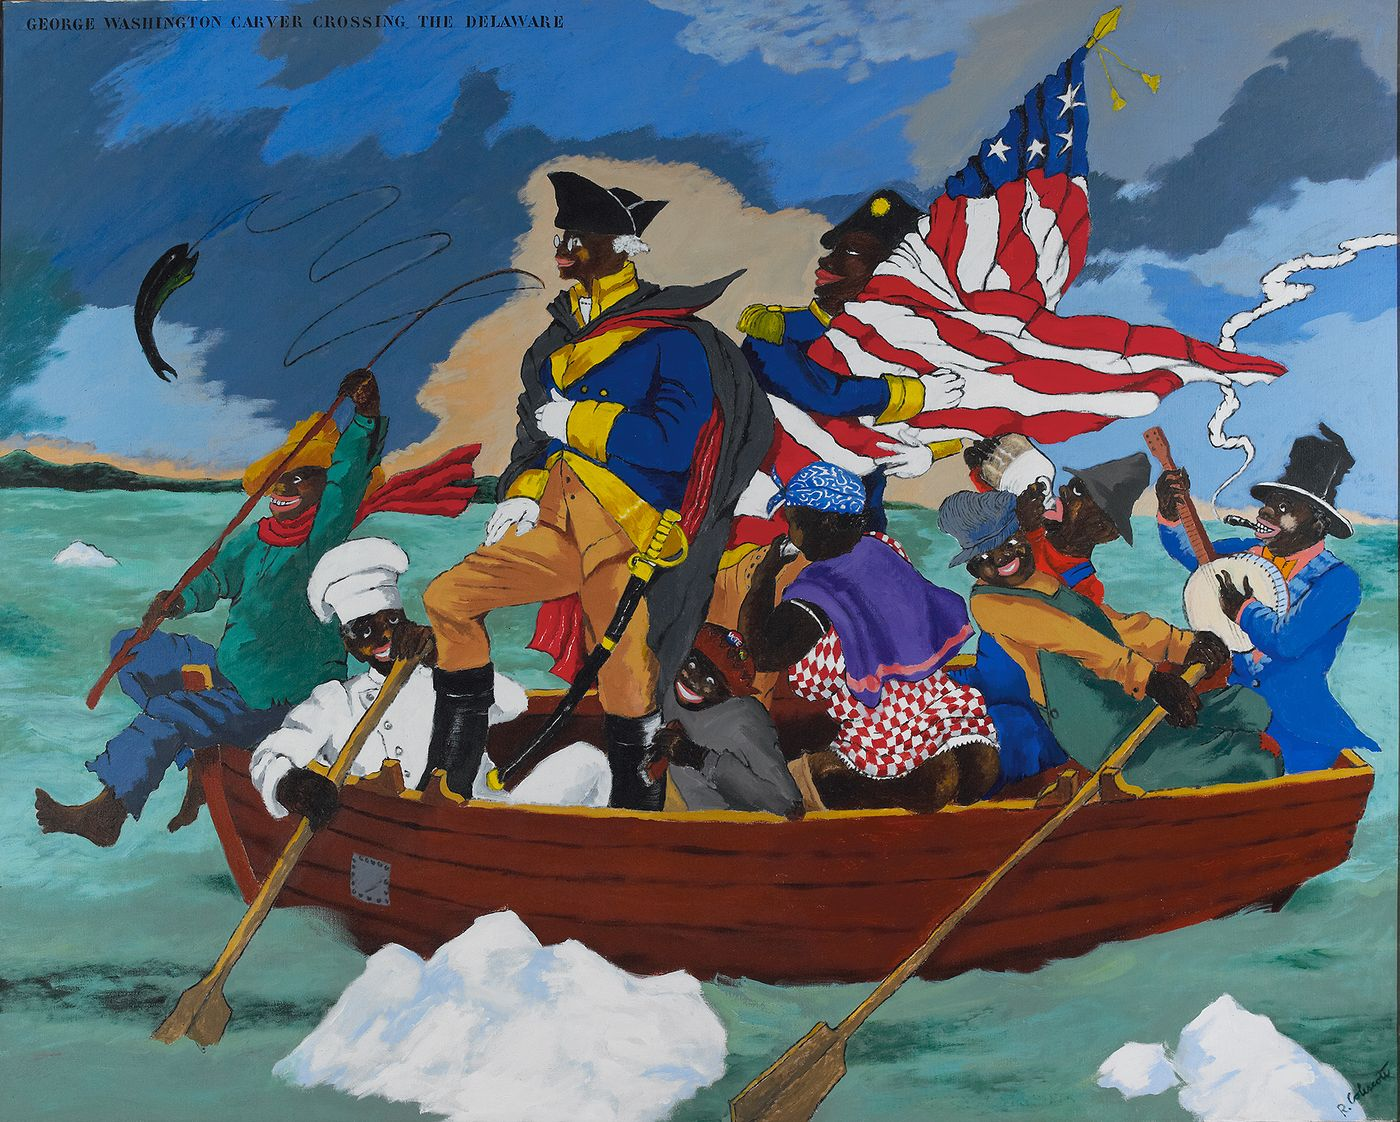 Seattle Art Museum's newest exhibition, 'Figuring History', explores leading American artists Robert Colescott, Kerry James Marshall and Mickalene Thomas, whose work reexamines history painting.